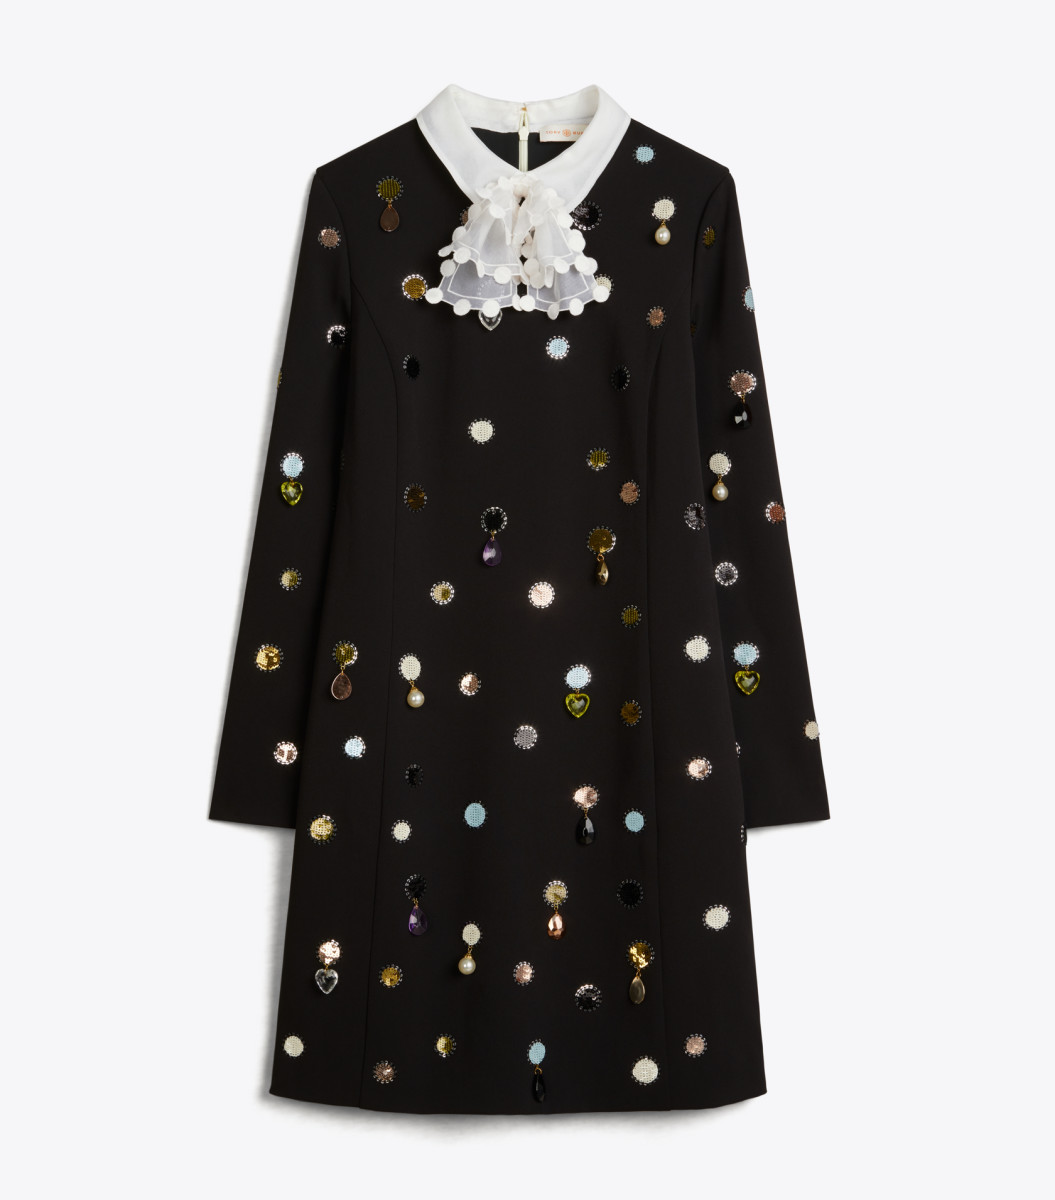 Tory Burch Convertible Jewel Embroidered Shift Dress, $698, available here.